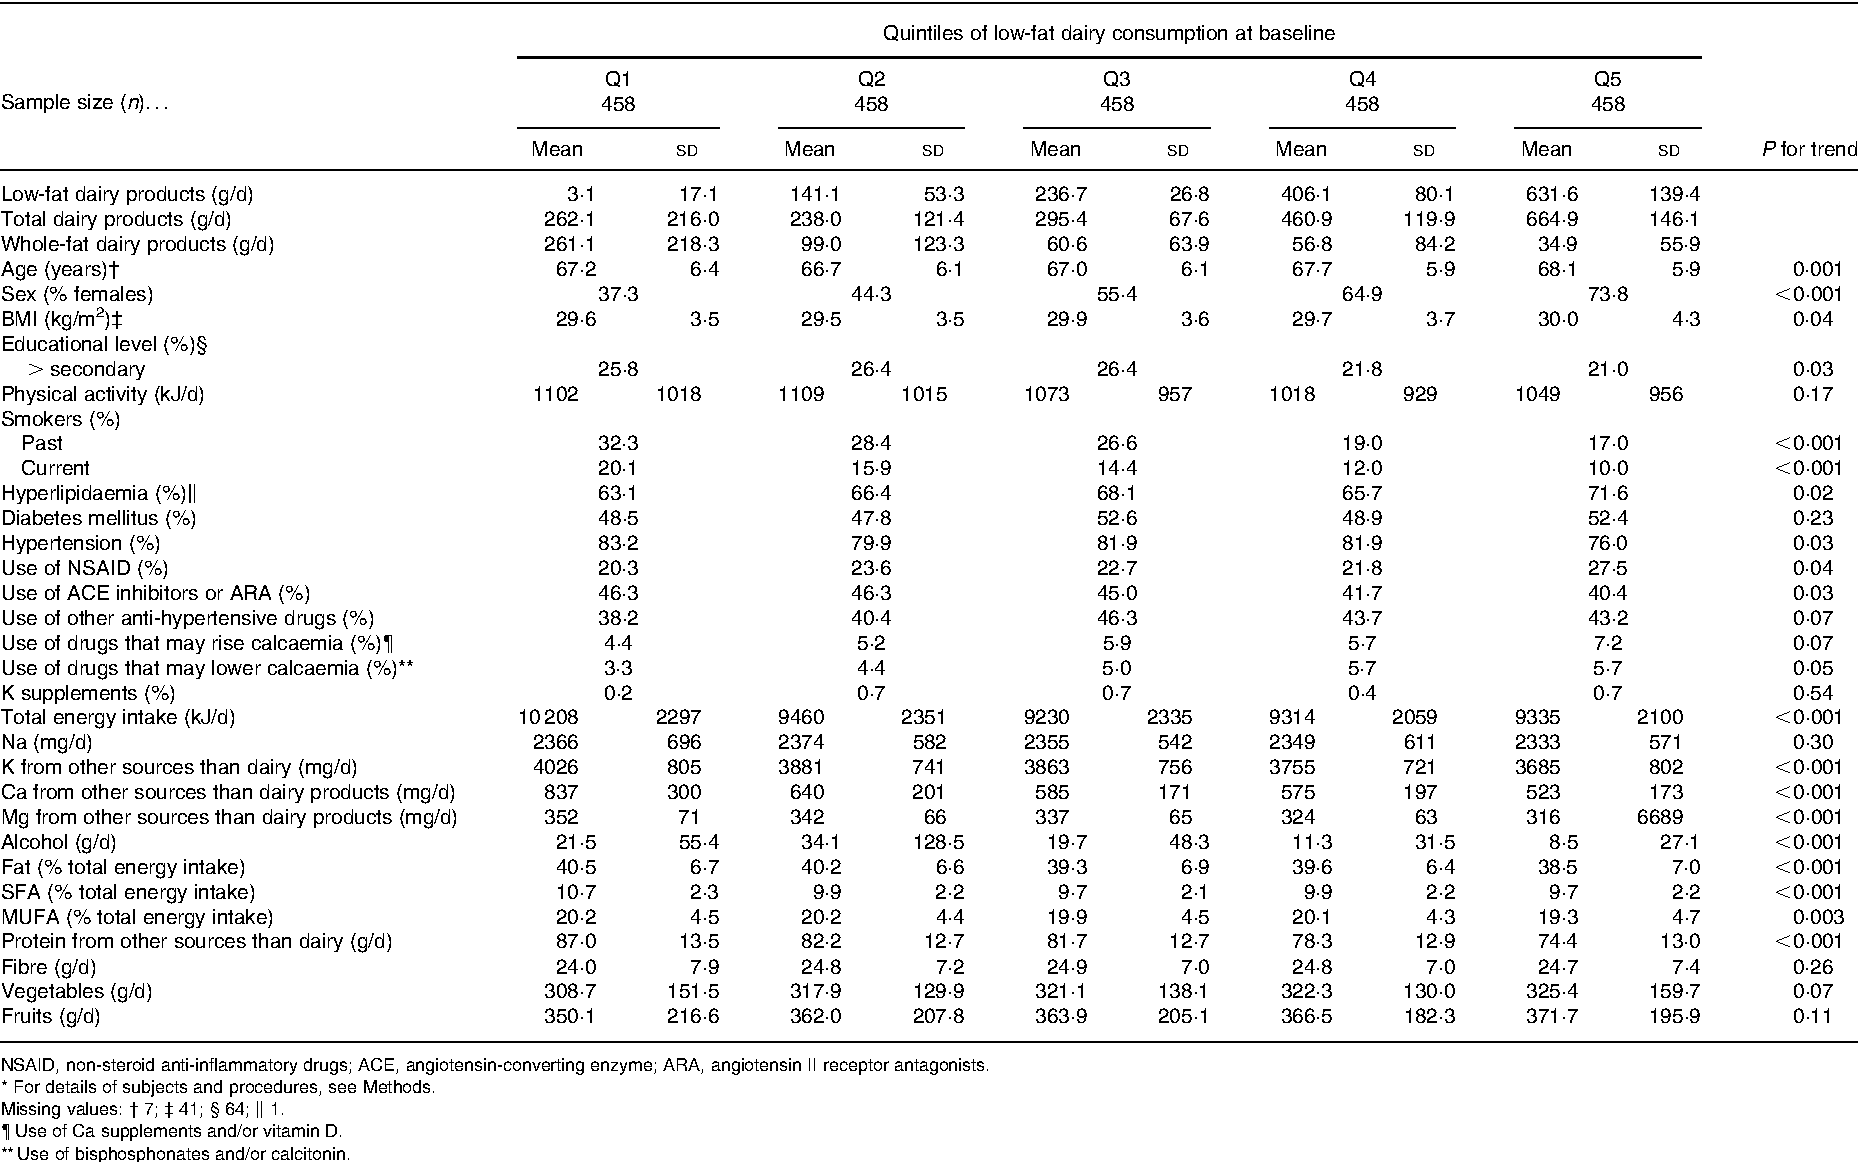 Table 1. Baseline characteristics of 2290 participants in the PREDIMED trial across quintiles of low-fat dairy consumption* (Means and standard deviations or percentages)